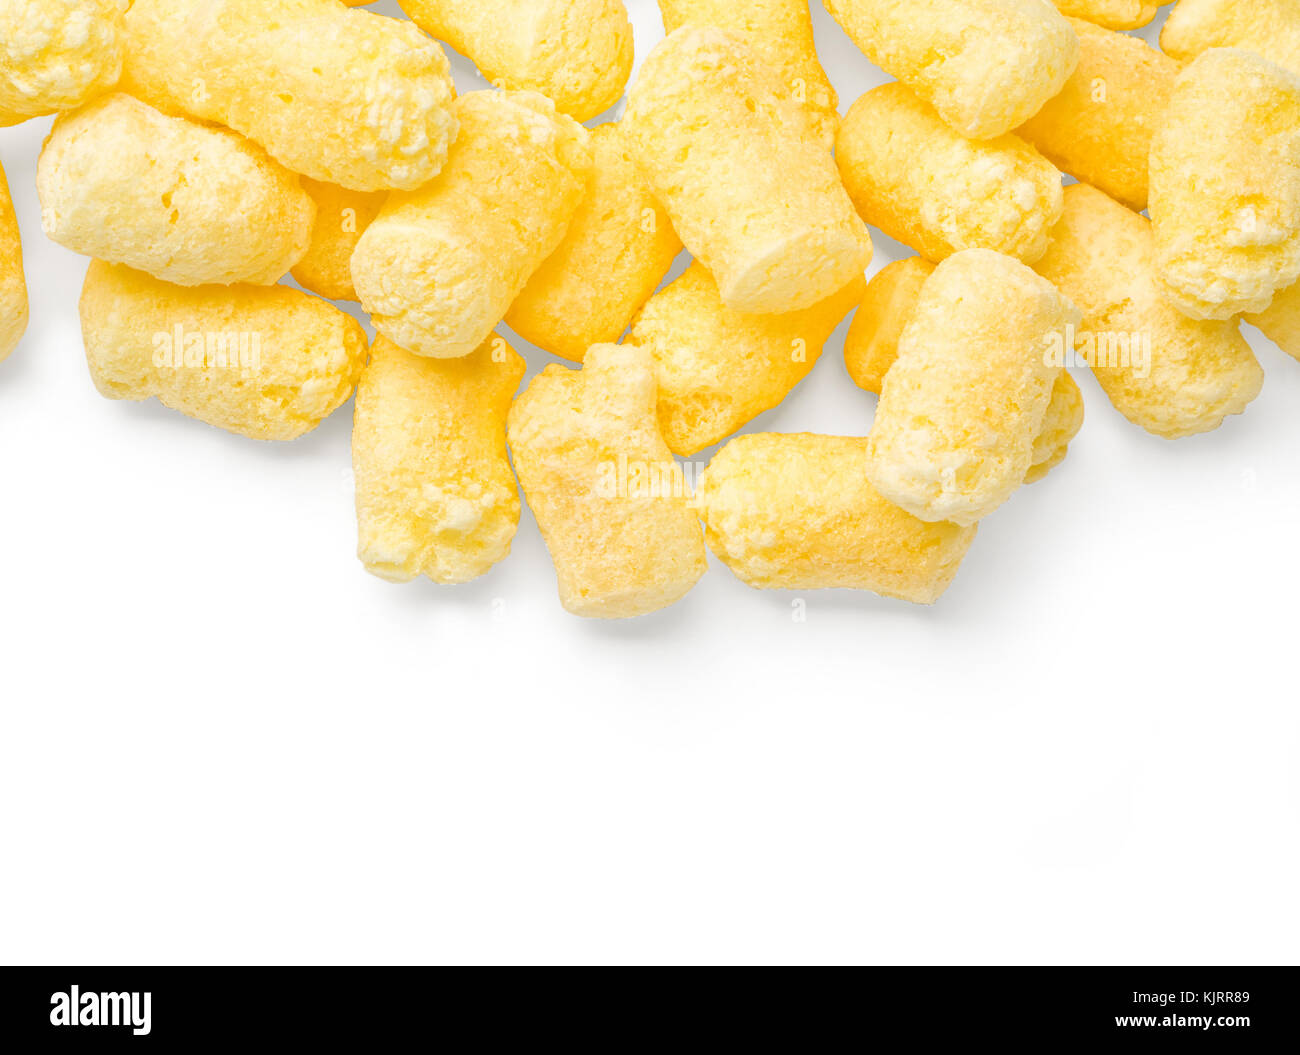 Crunchy corn snacks on white background. With clipping path - Stock Image